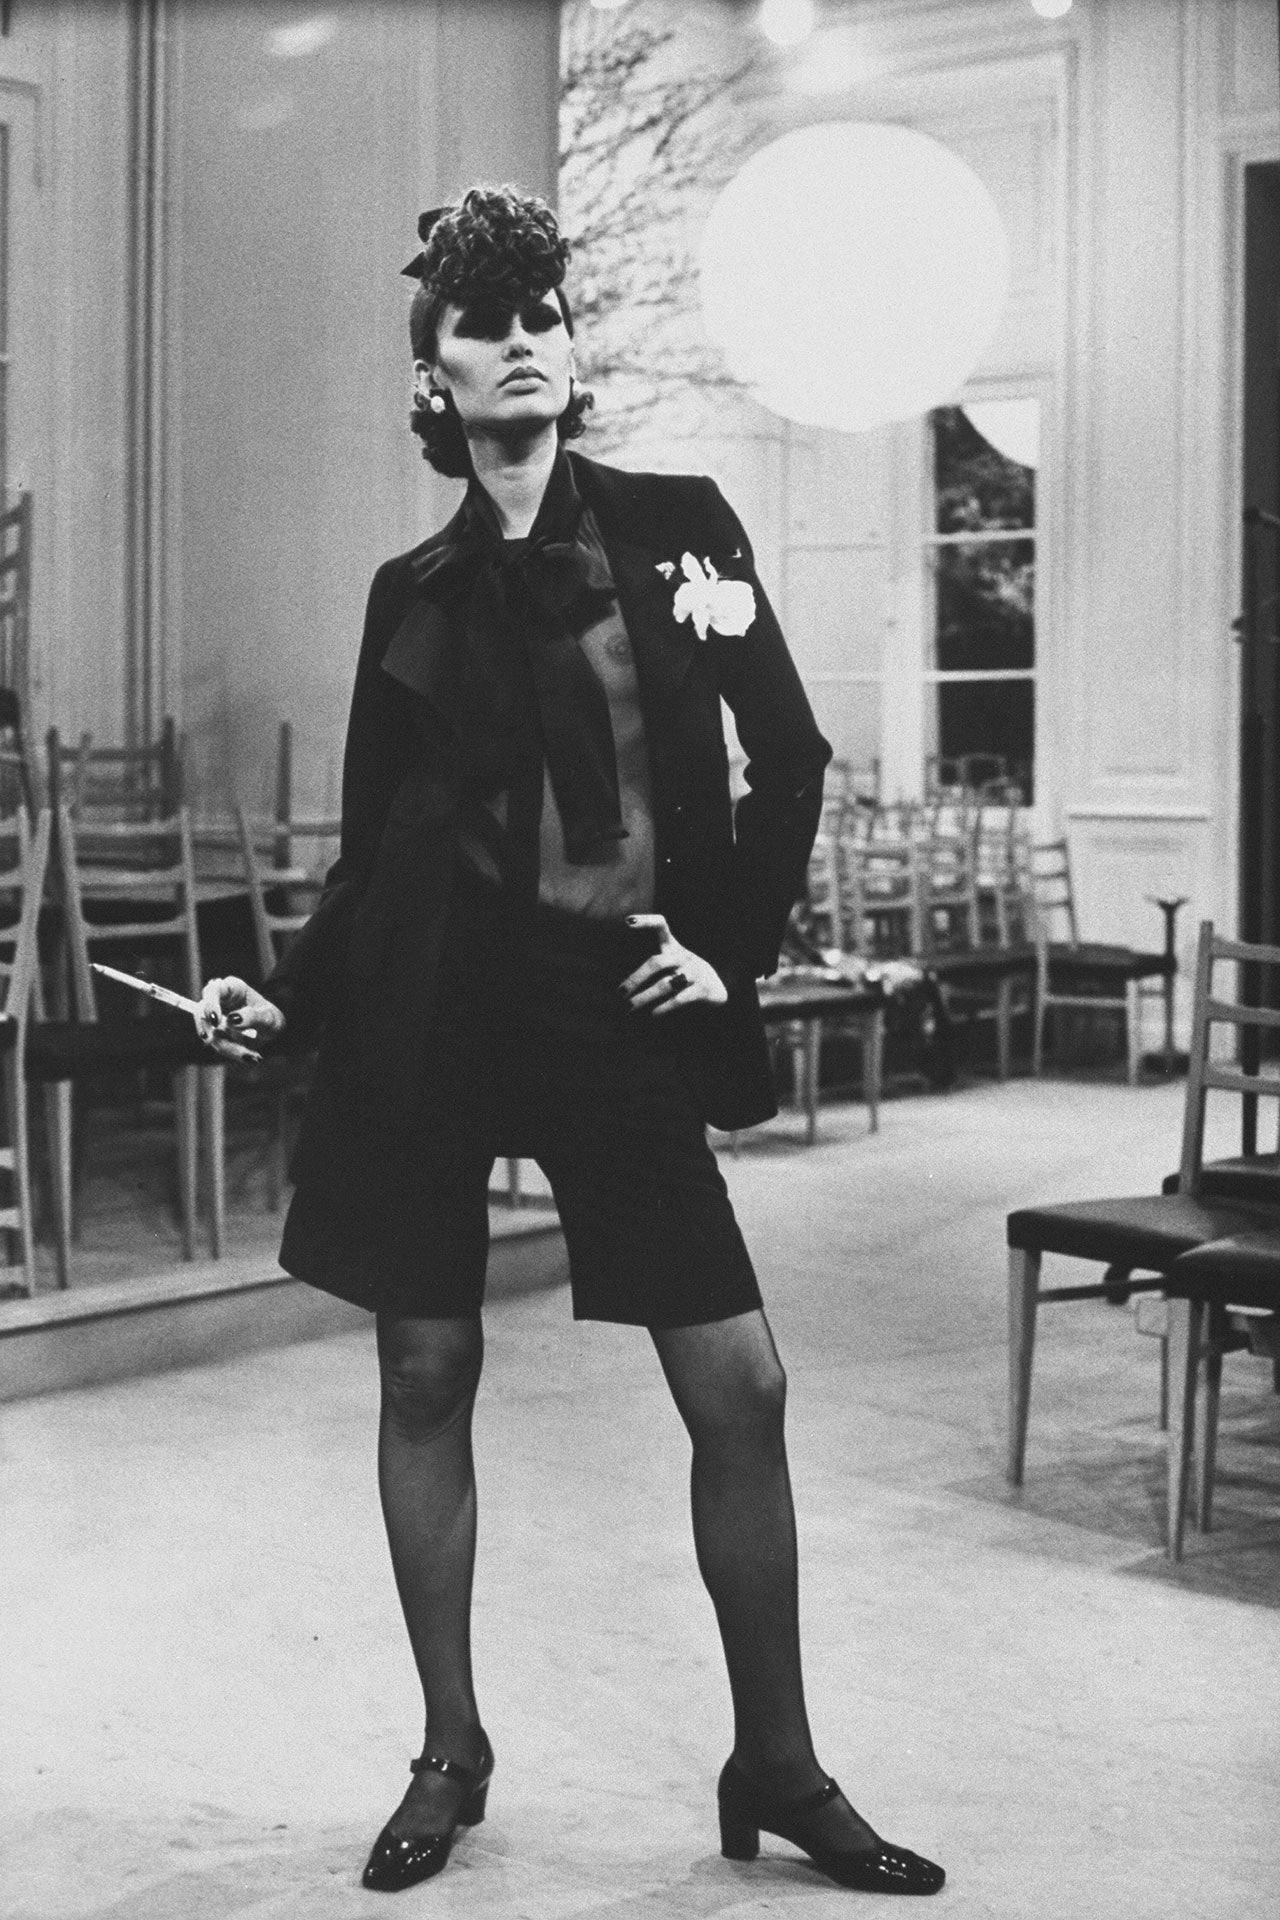 Danielle Sauvajeon v modelu YSL, 1968 Autor: Bill Ray/The Life Picture Collection via Getty Images/Getty Images